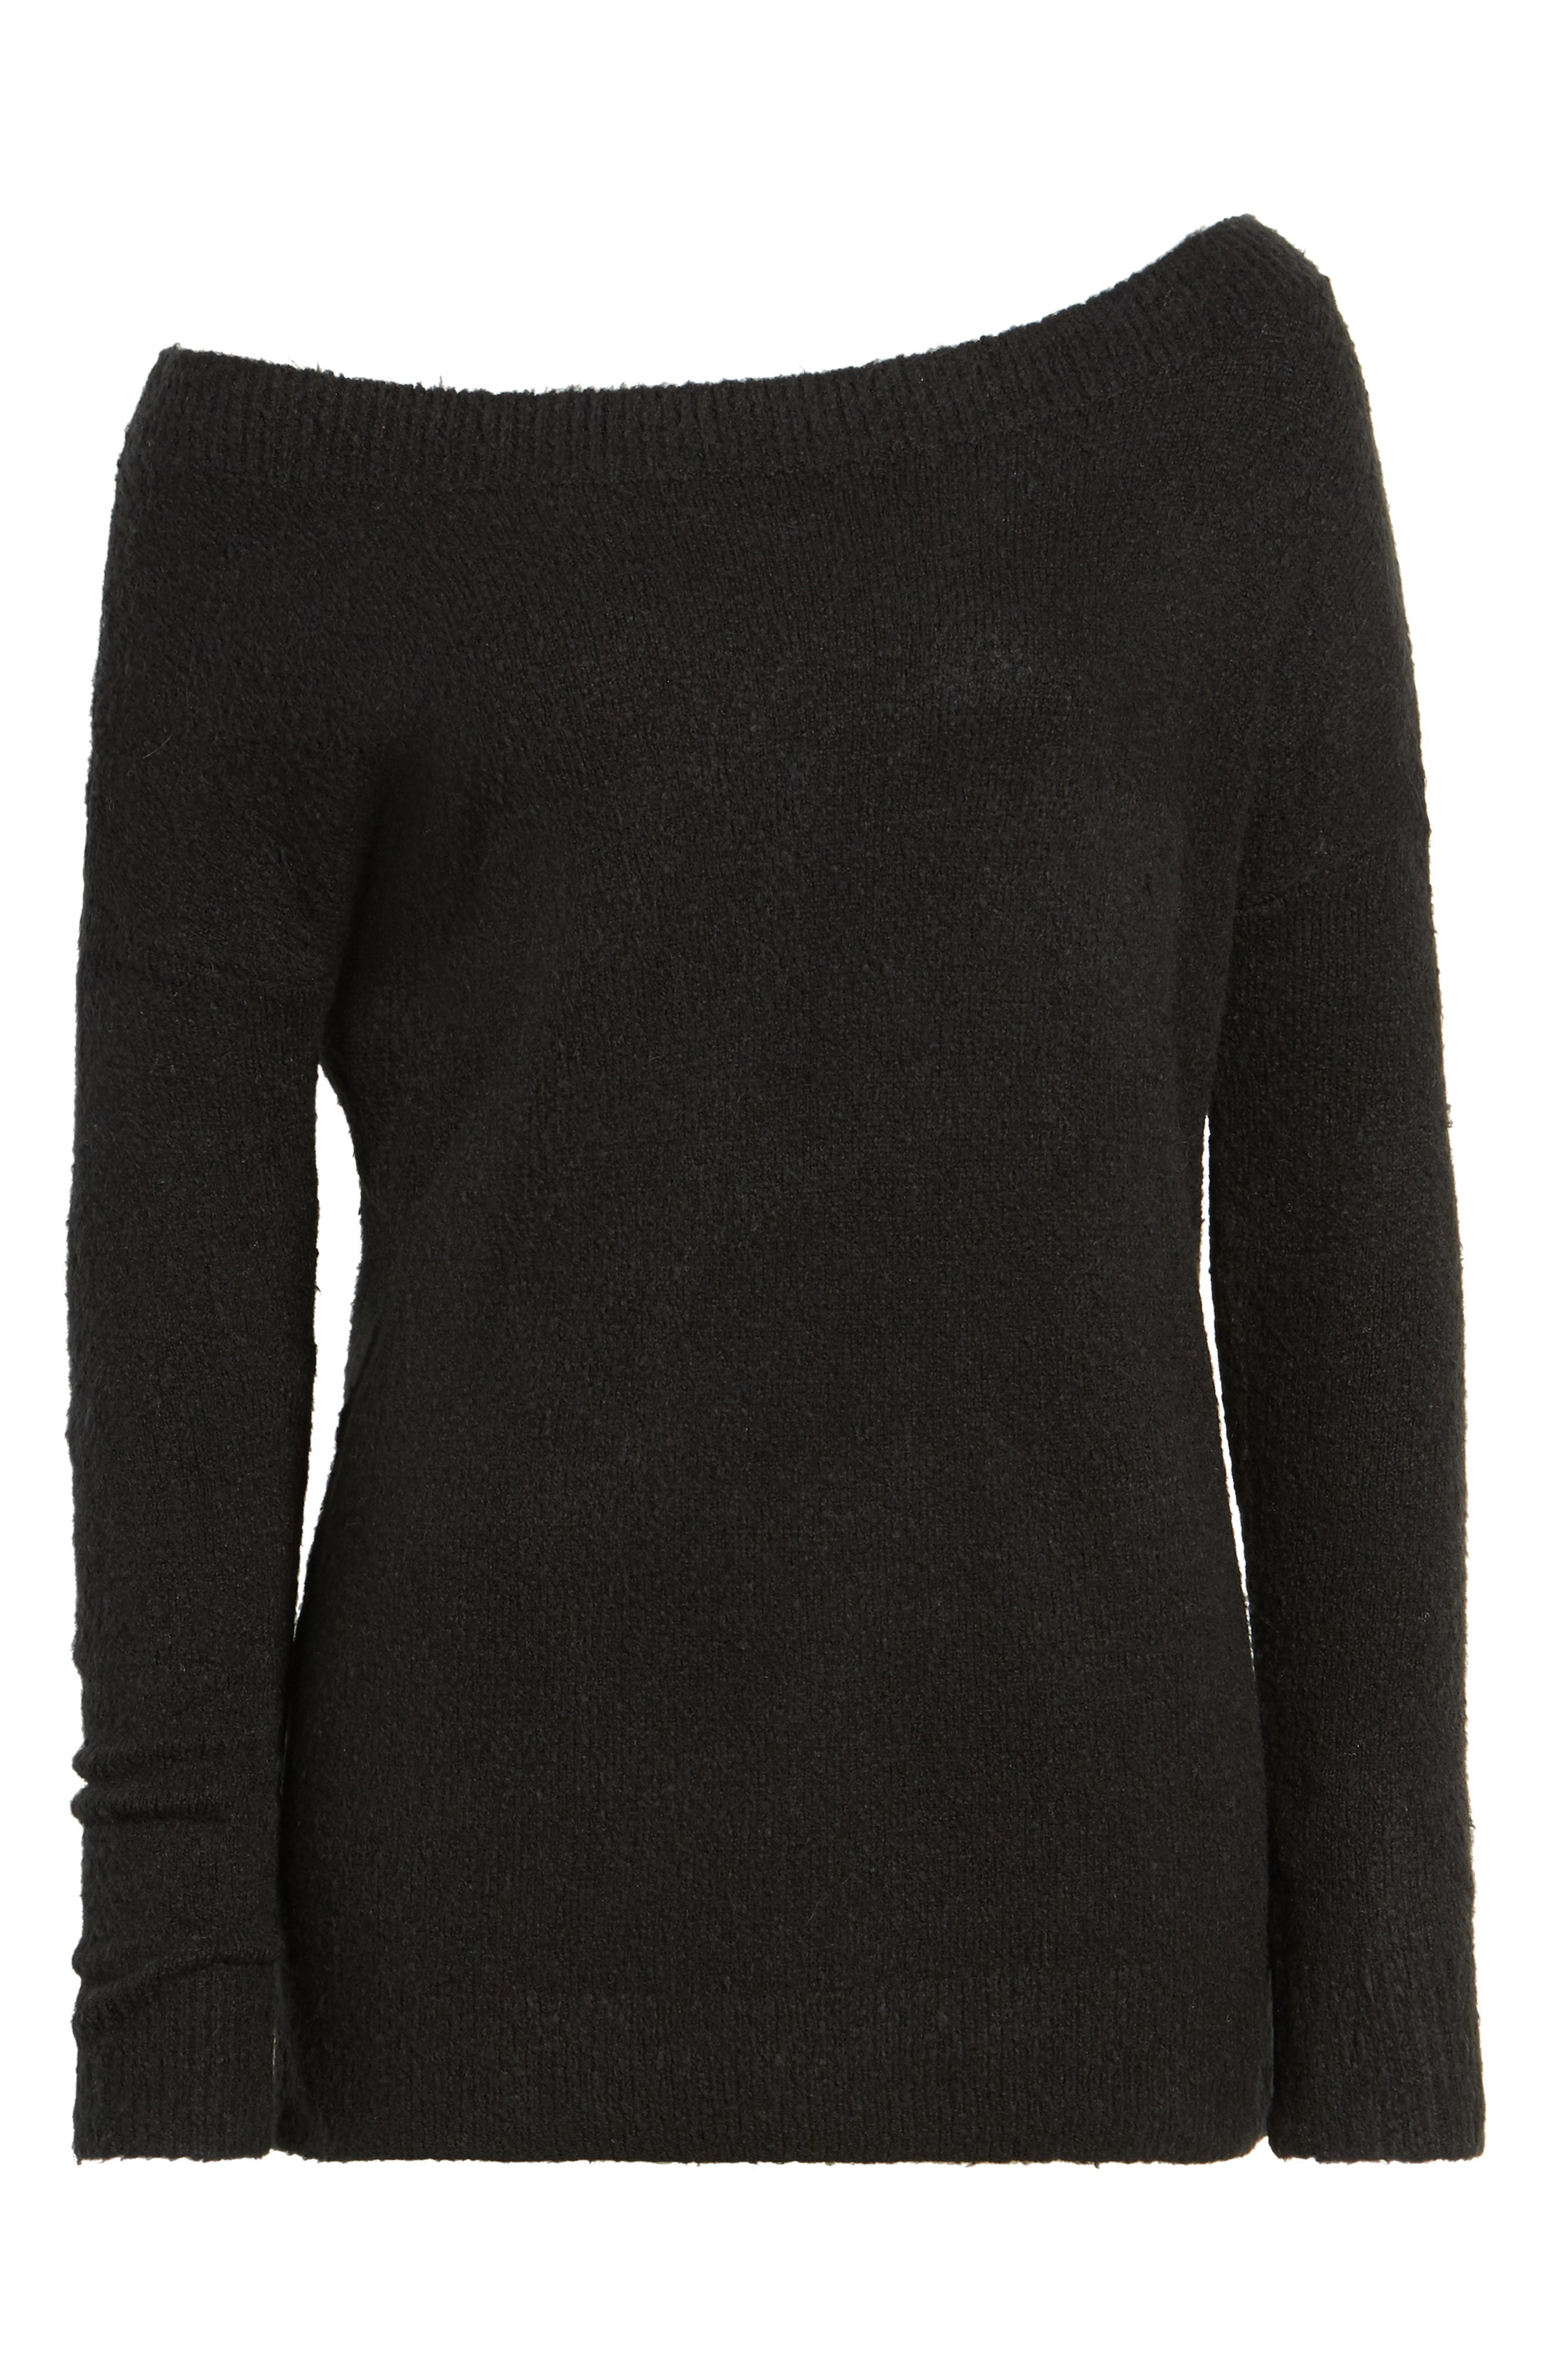 Urban Flossy One-Shoulder Sweater,                             Alternate thumbnail 11, color,